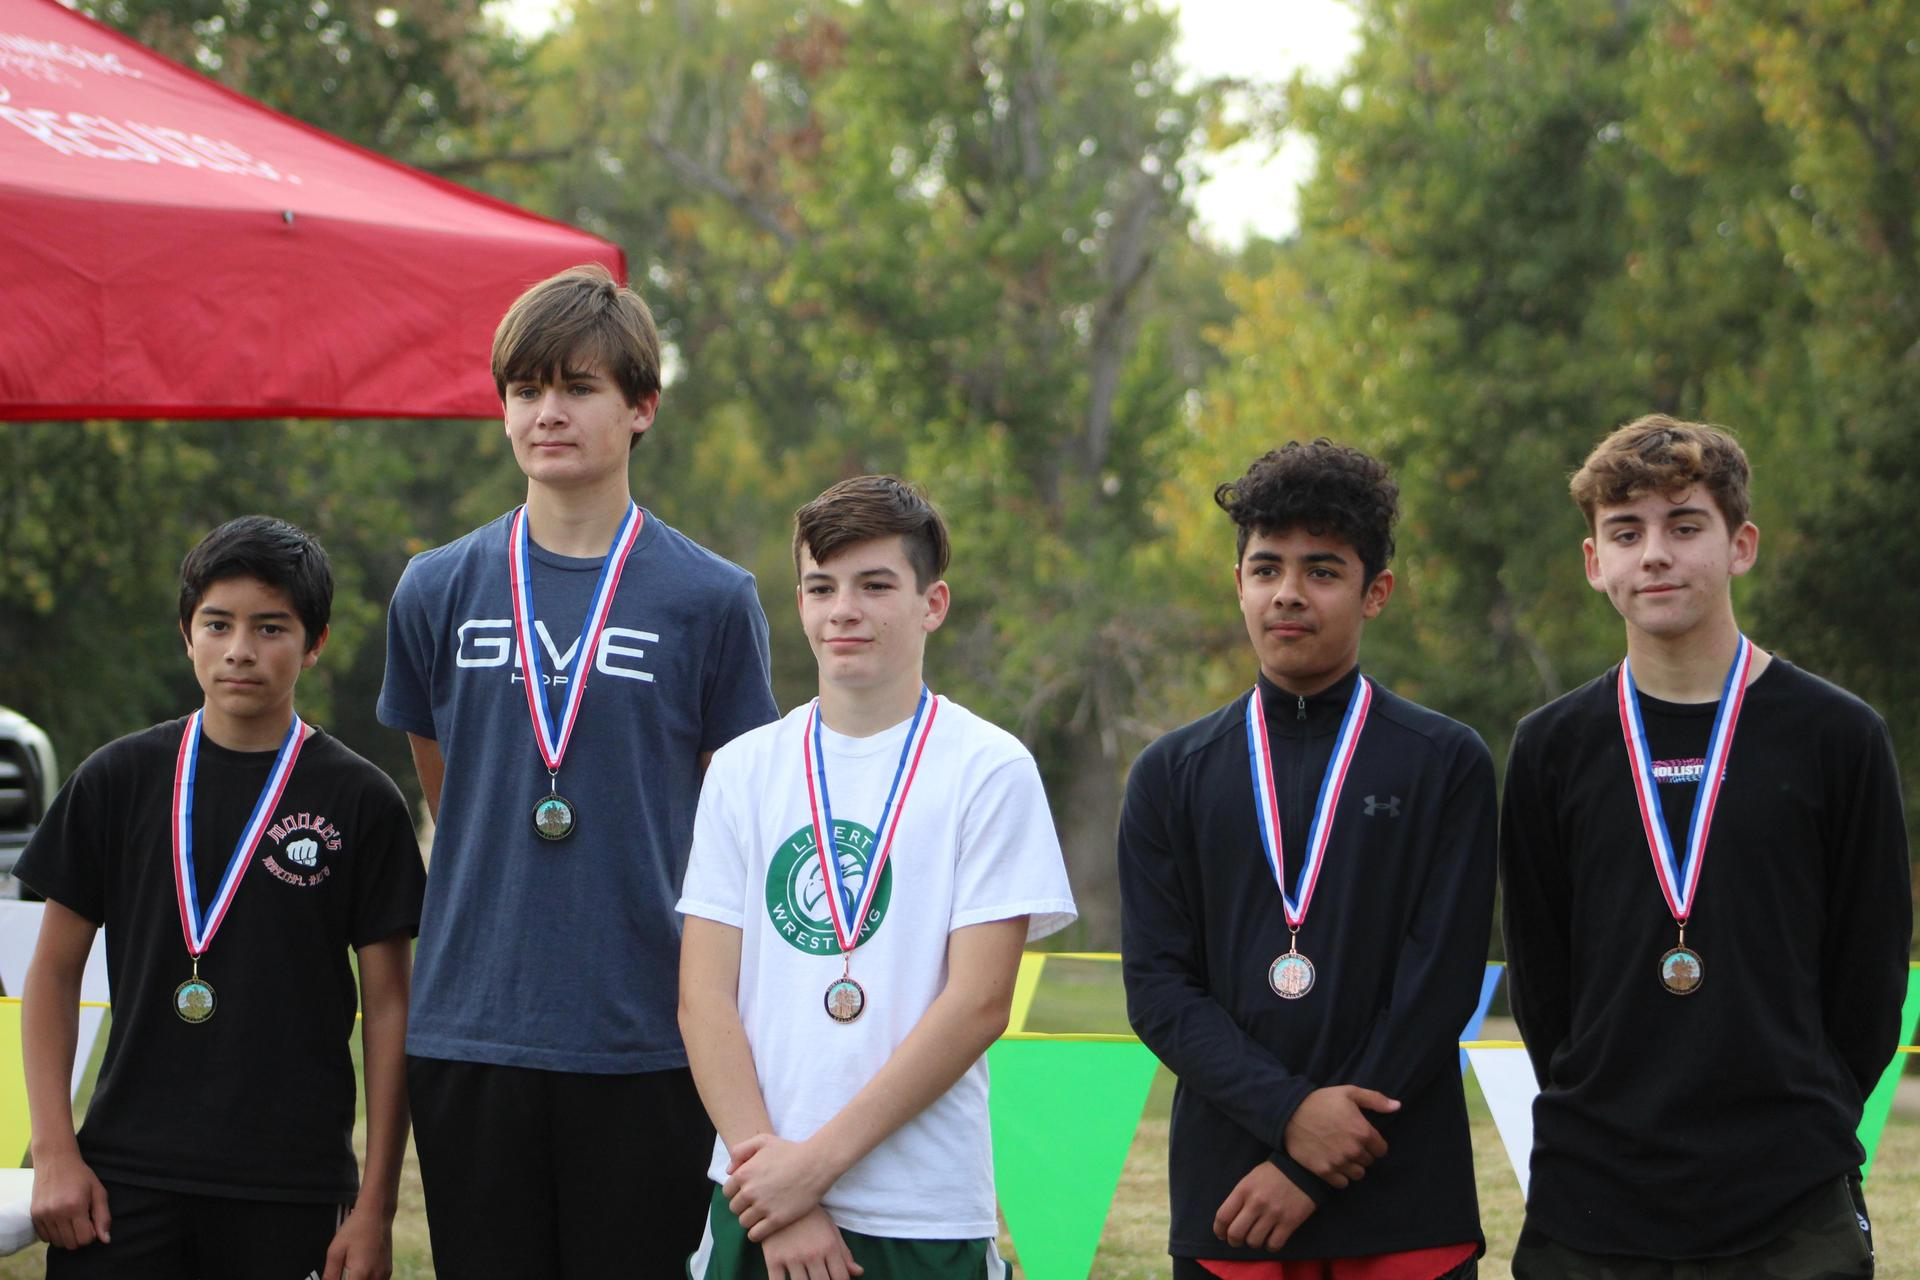 Issac Rivera, Tyler Henson, Angel Gonzales and Carson Borba with their metals